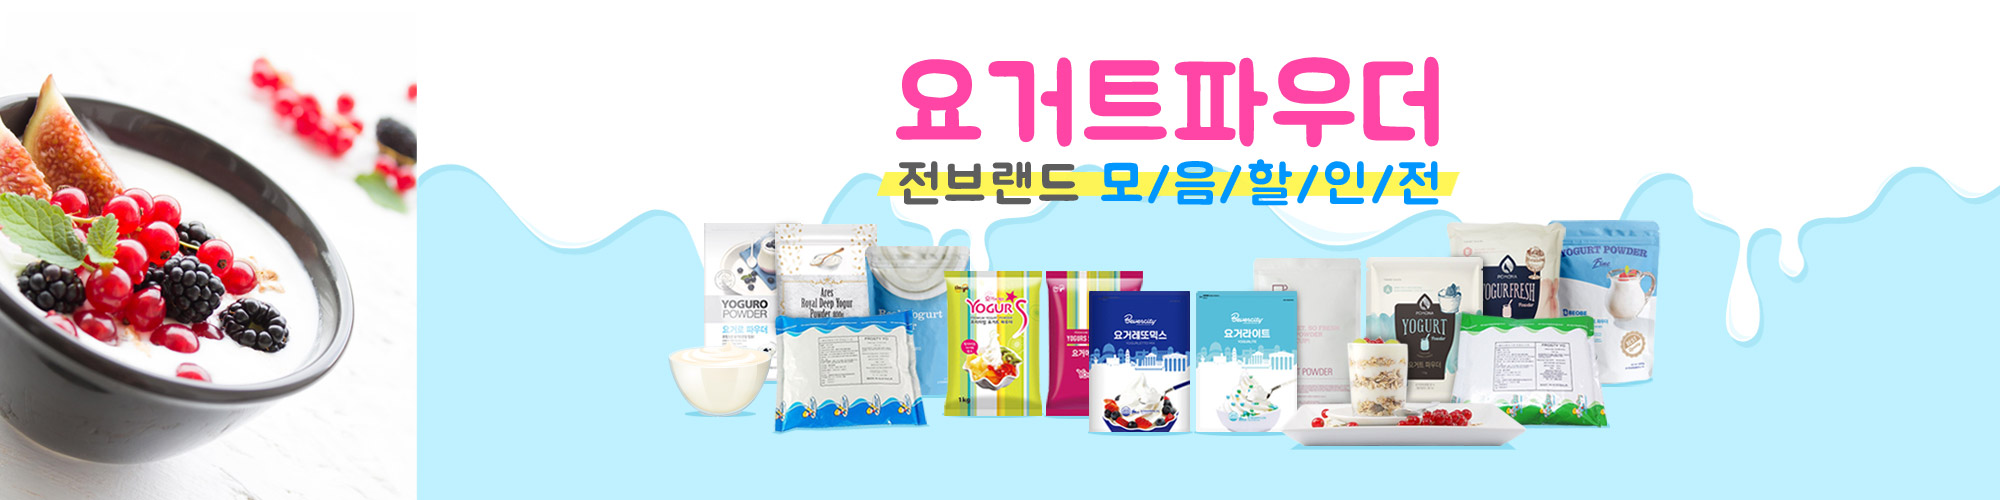 yogur_sale2000